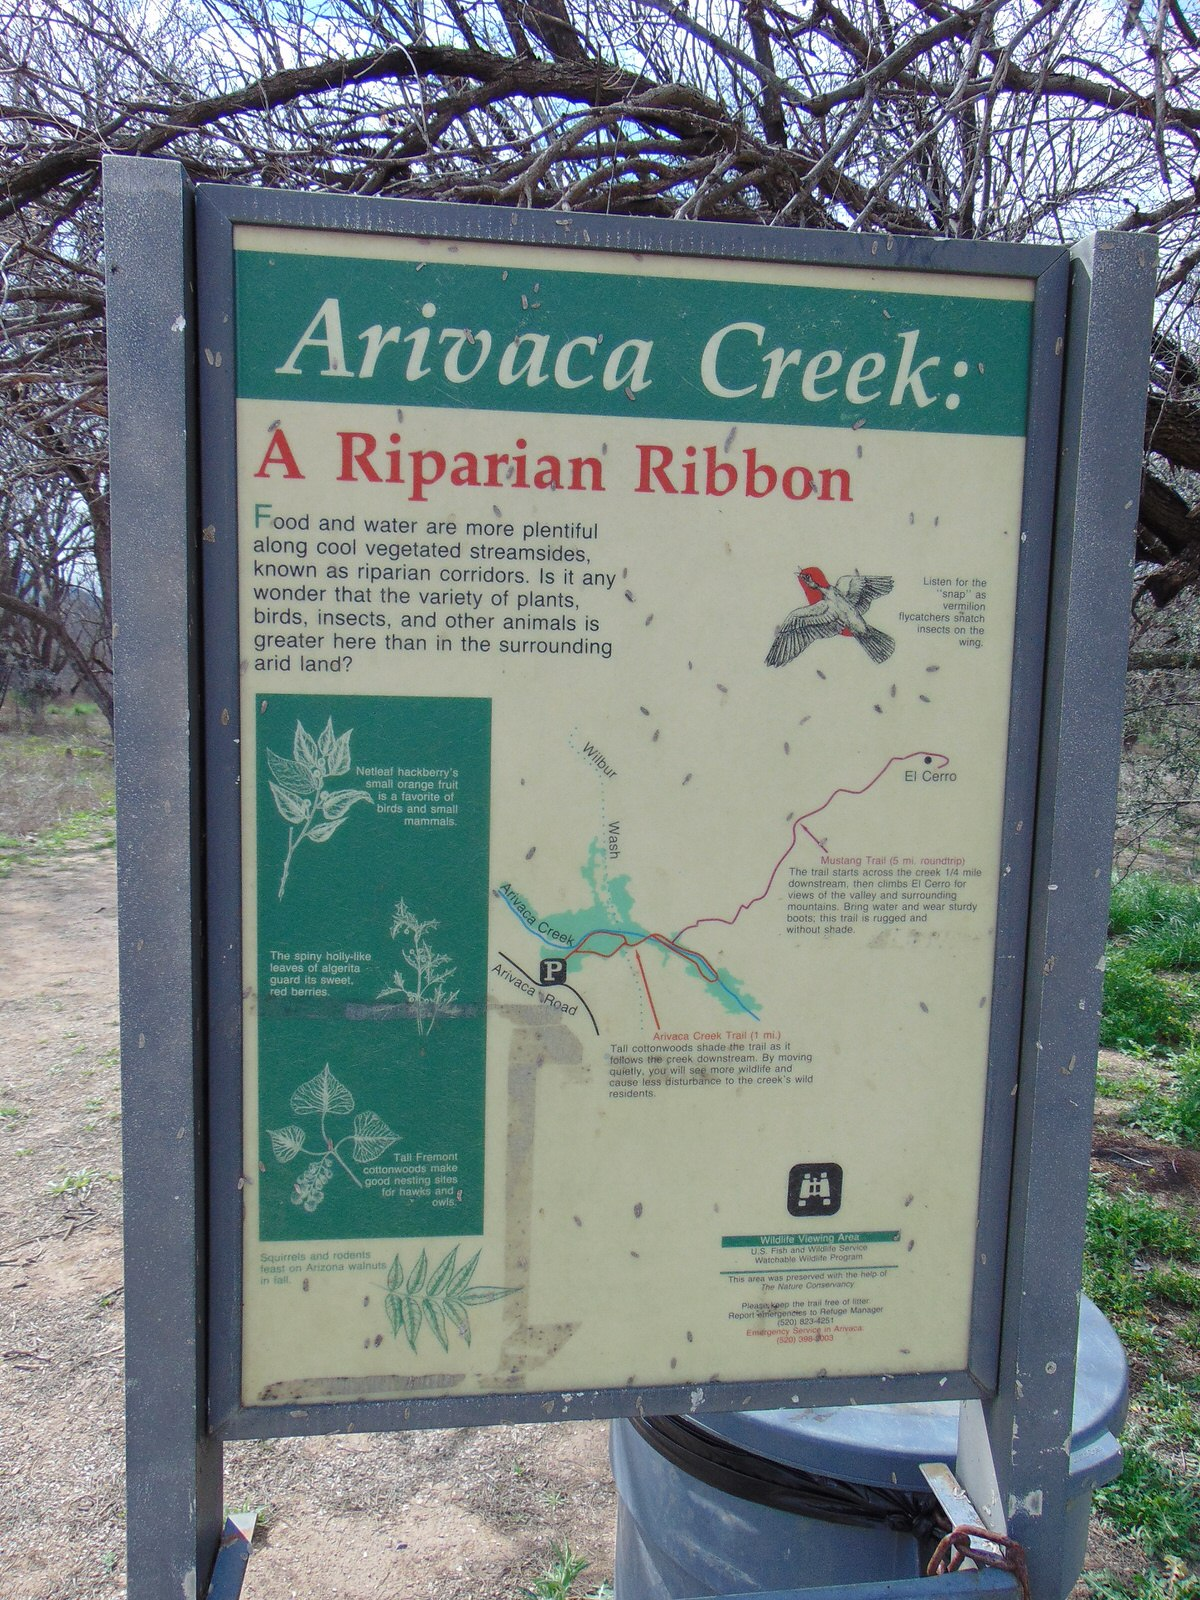 photo: Sign at the Arivaca Creek traihead in the Buenos Aires National Wildlife Refuge. Photo by The Old Pueblo wiki.